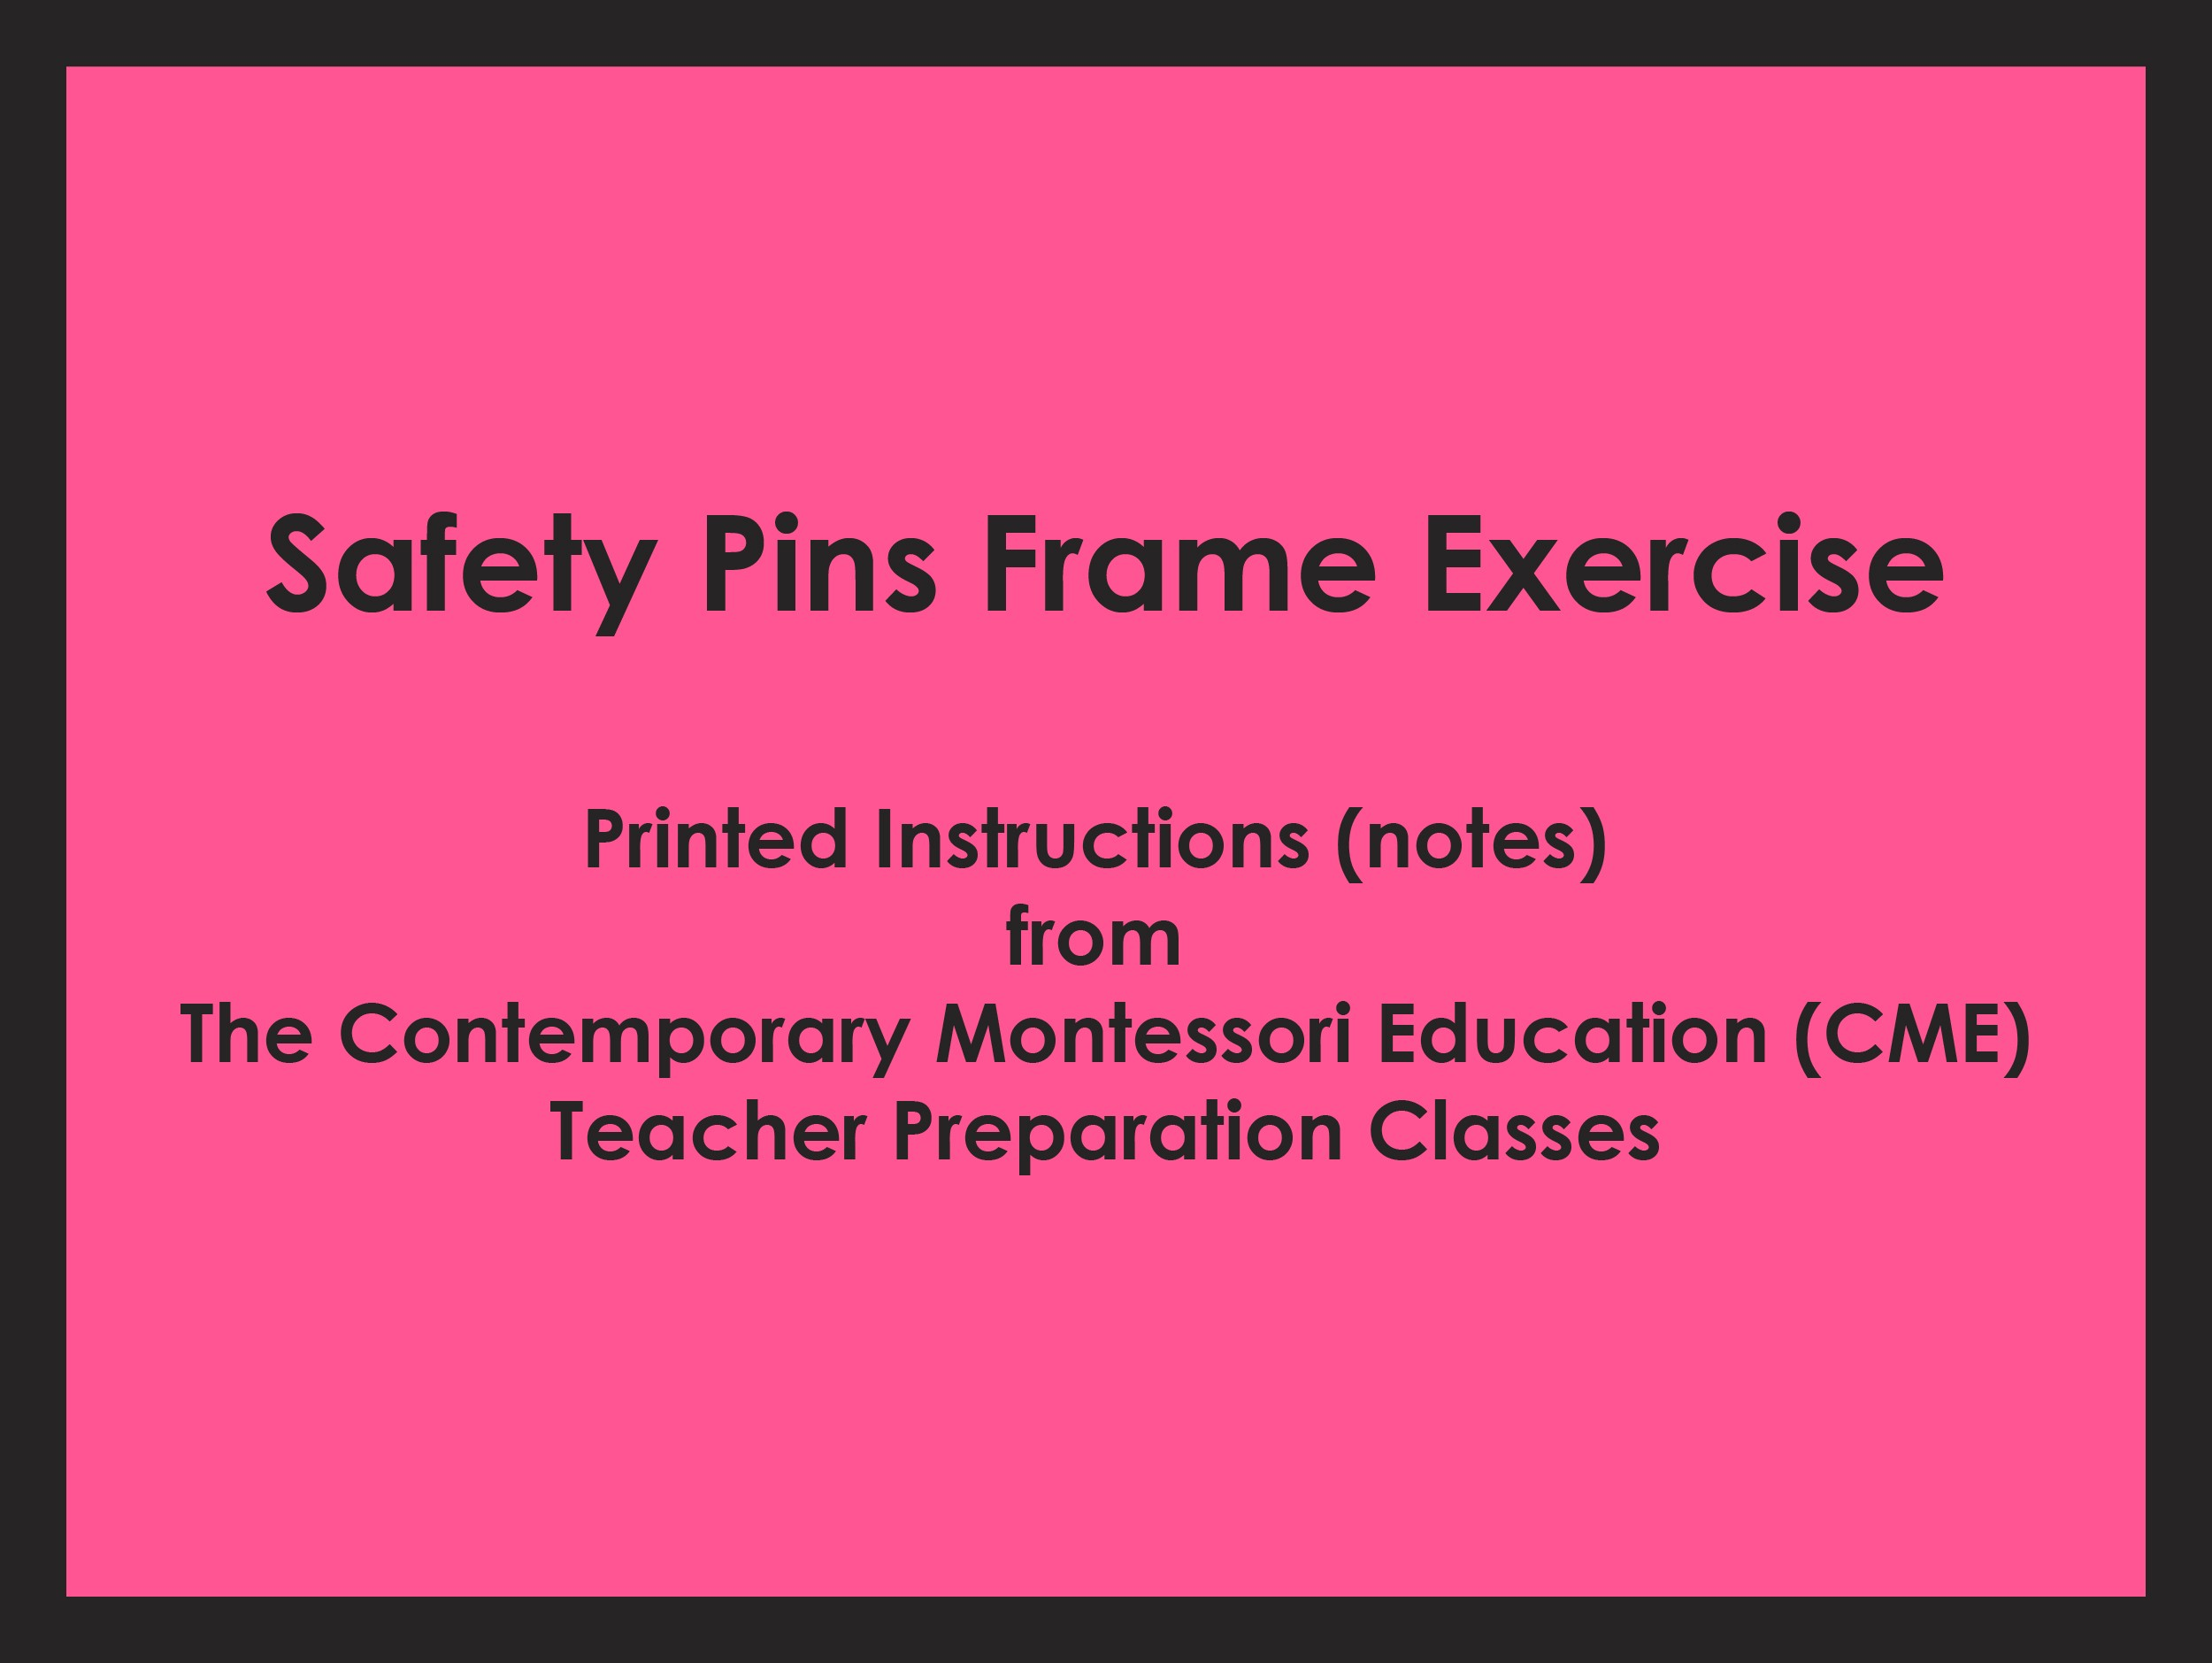 Safety Pins Frame Exercise (CME notes) ● PL-CME-001.5